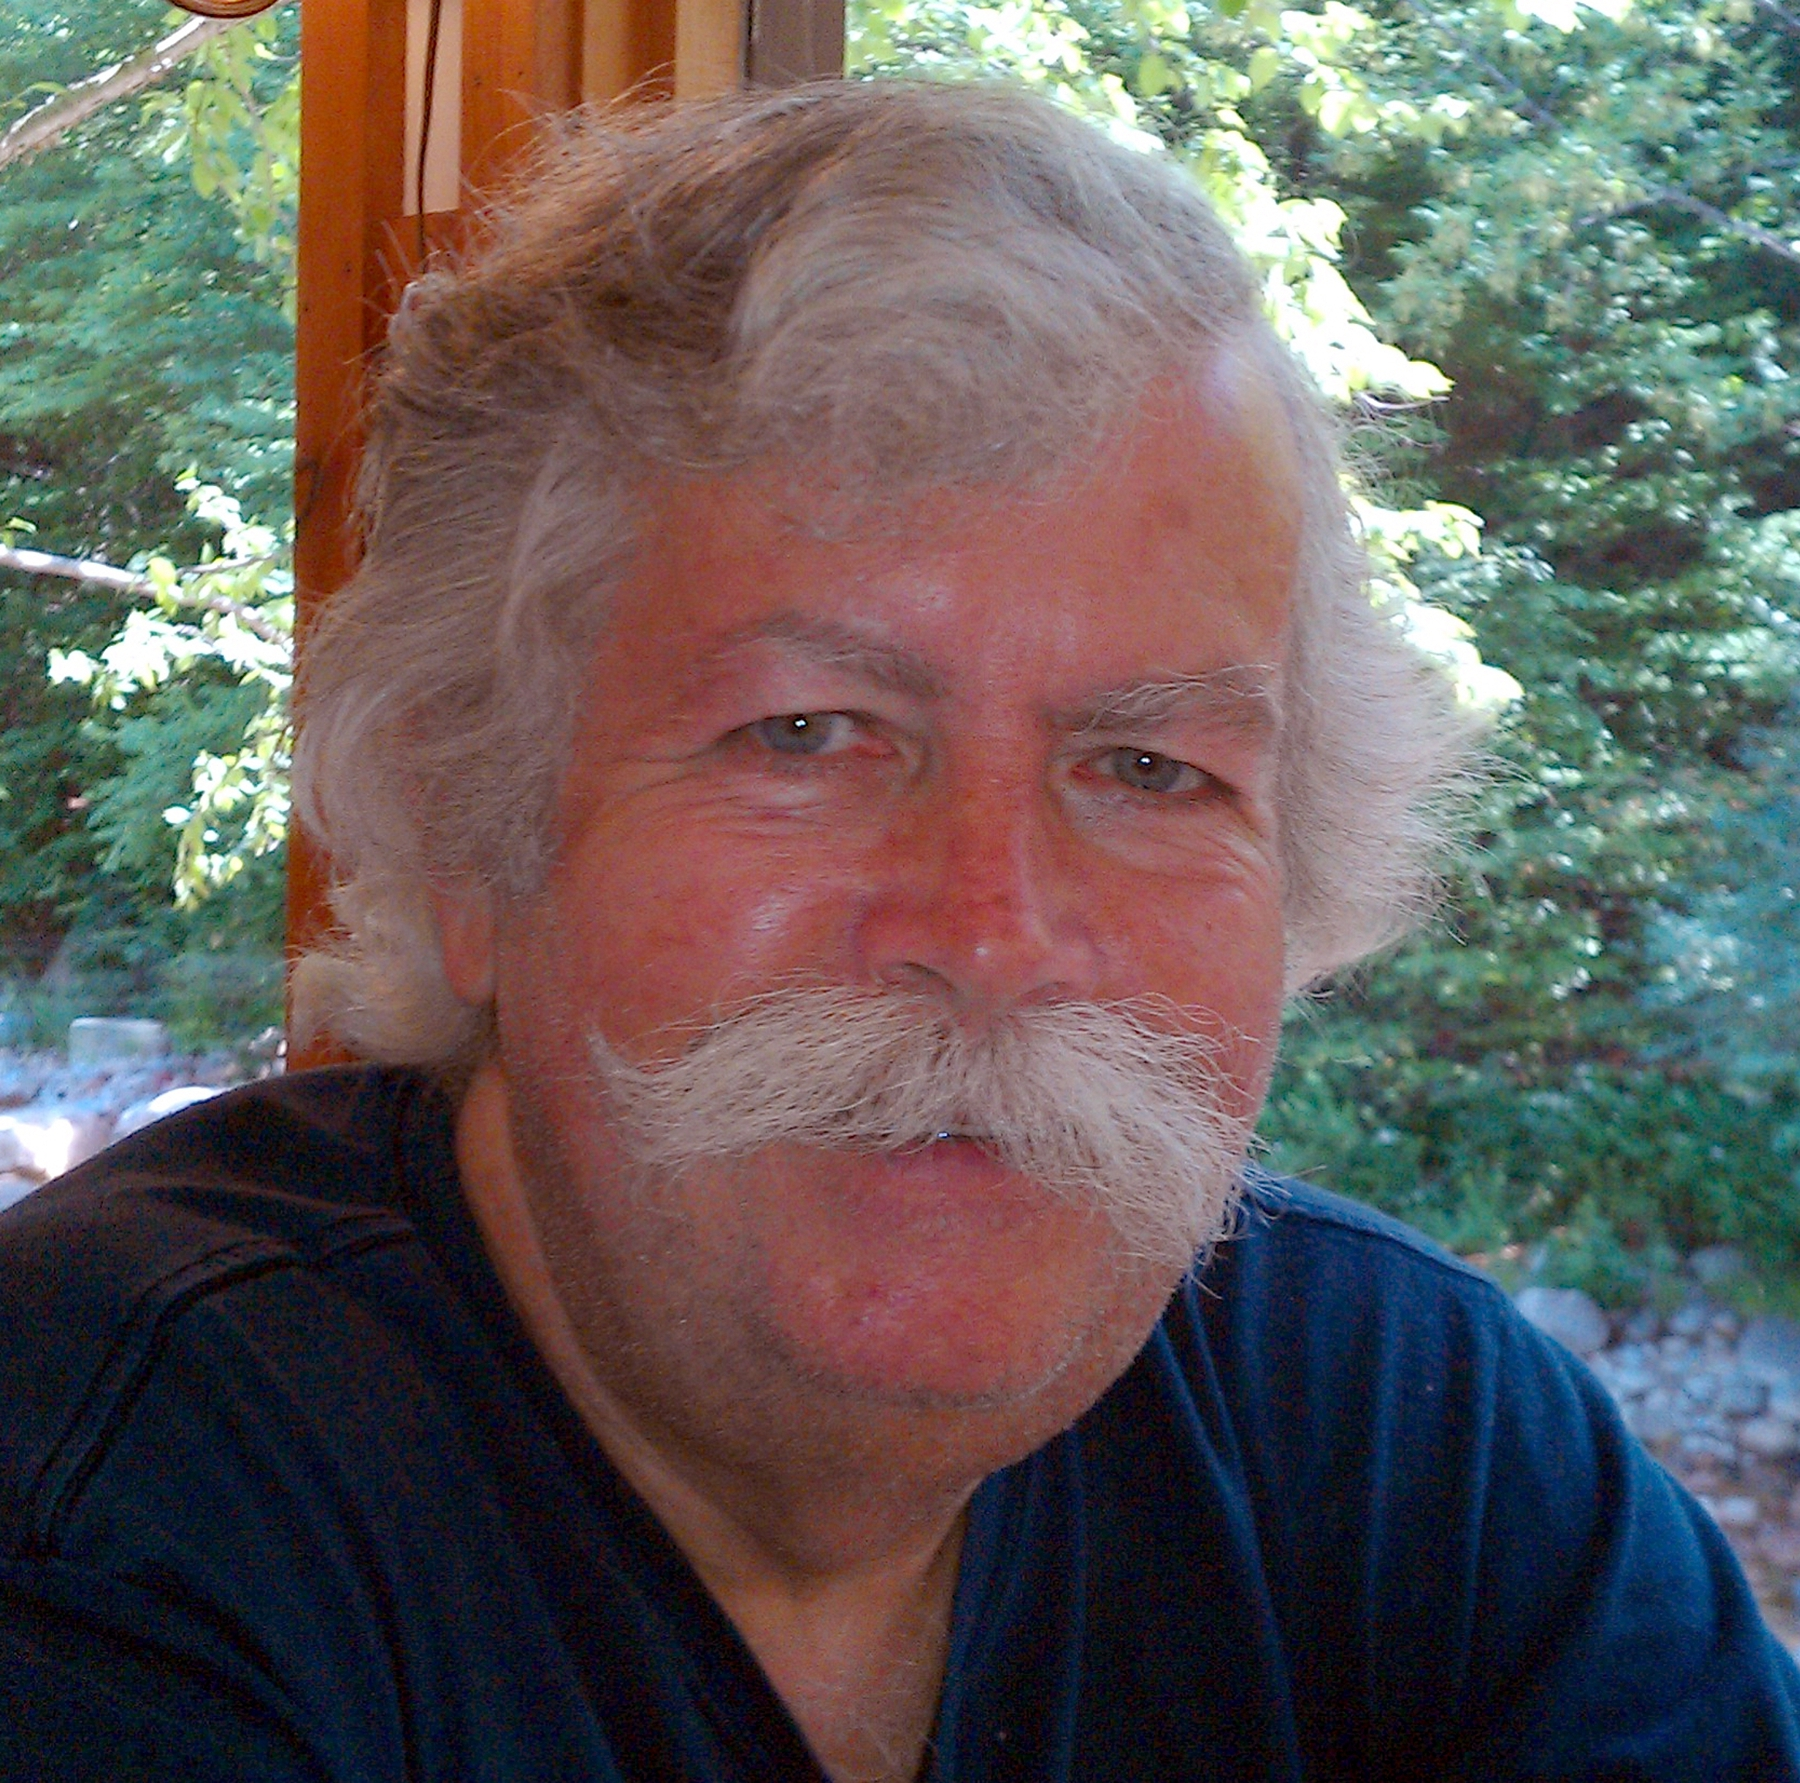 Dennis R. Cote of Tyngsborough